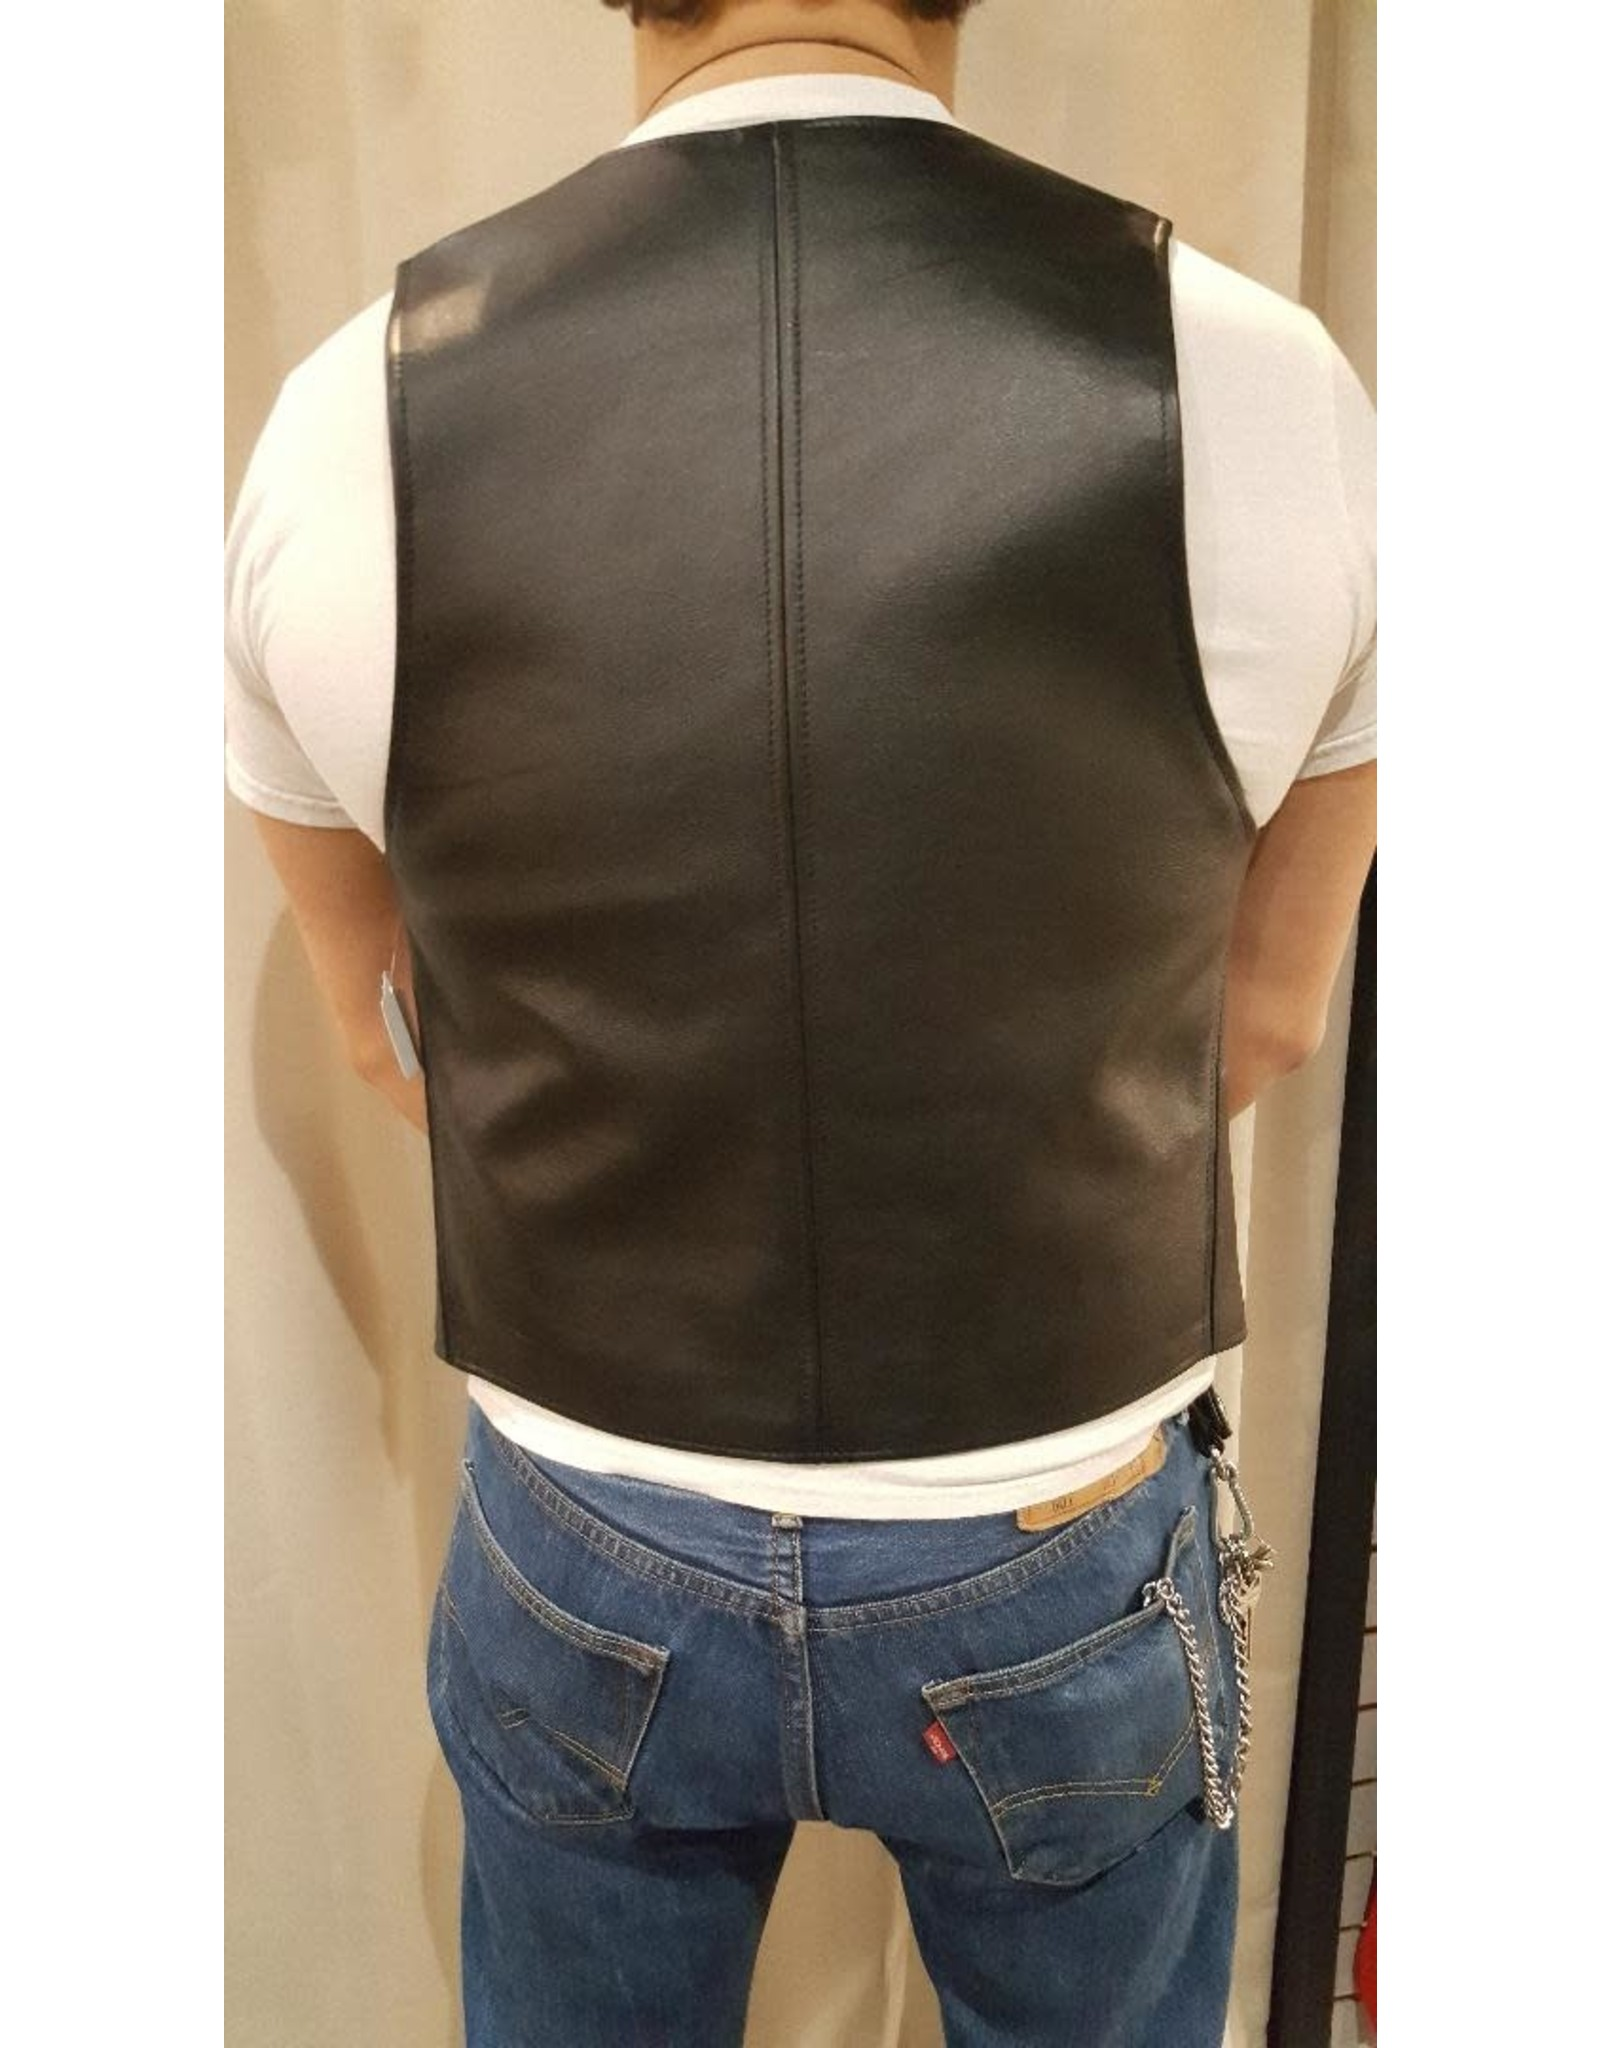 Doghouse Leathers Crafting DH Leathers Bar Vest